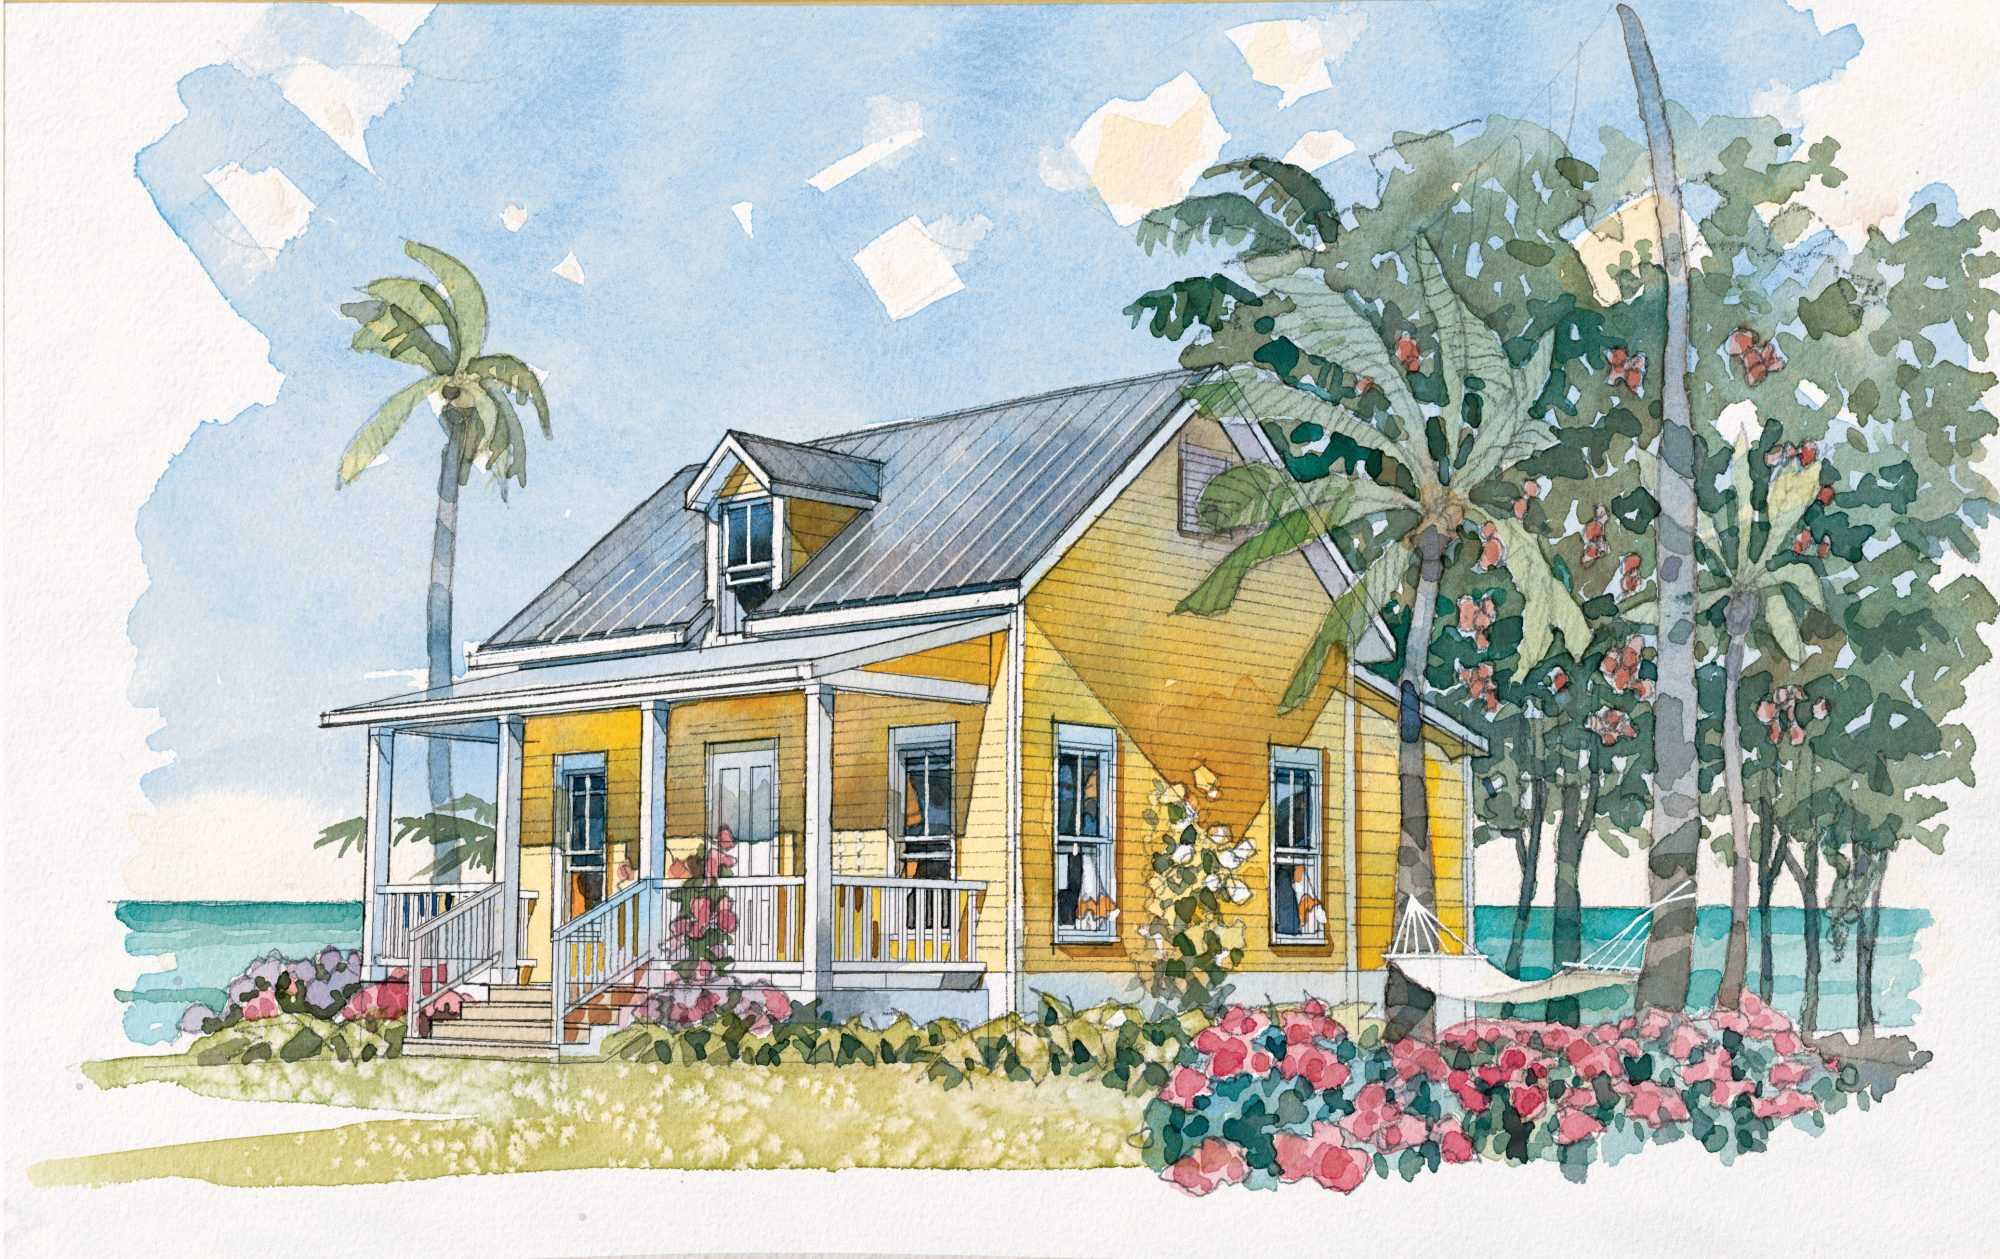 Beachside Bungalow Plan #1117